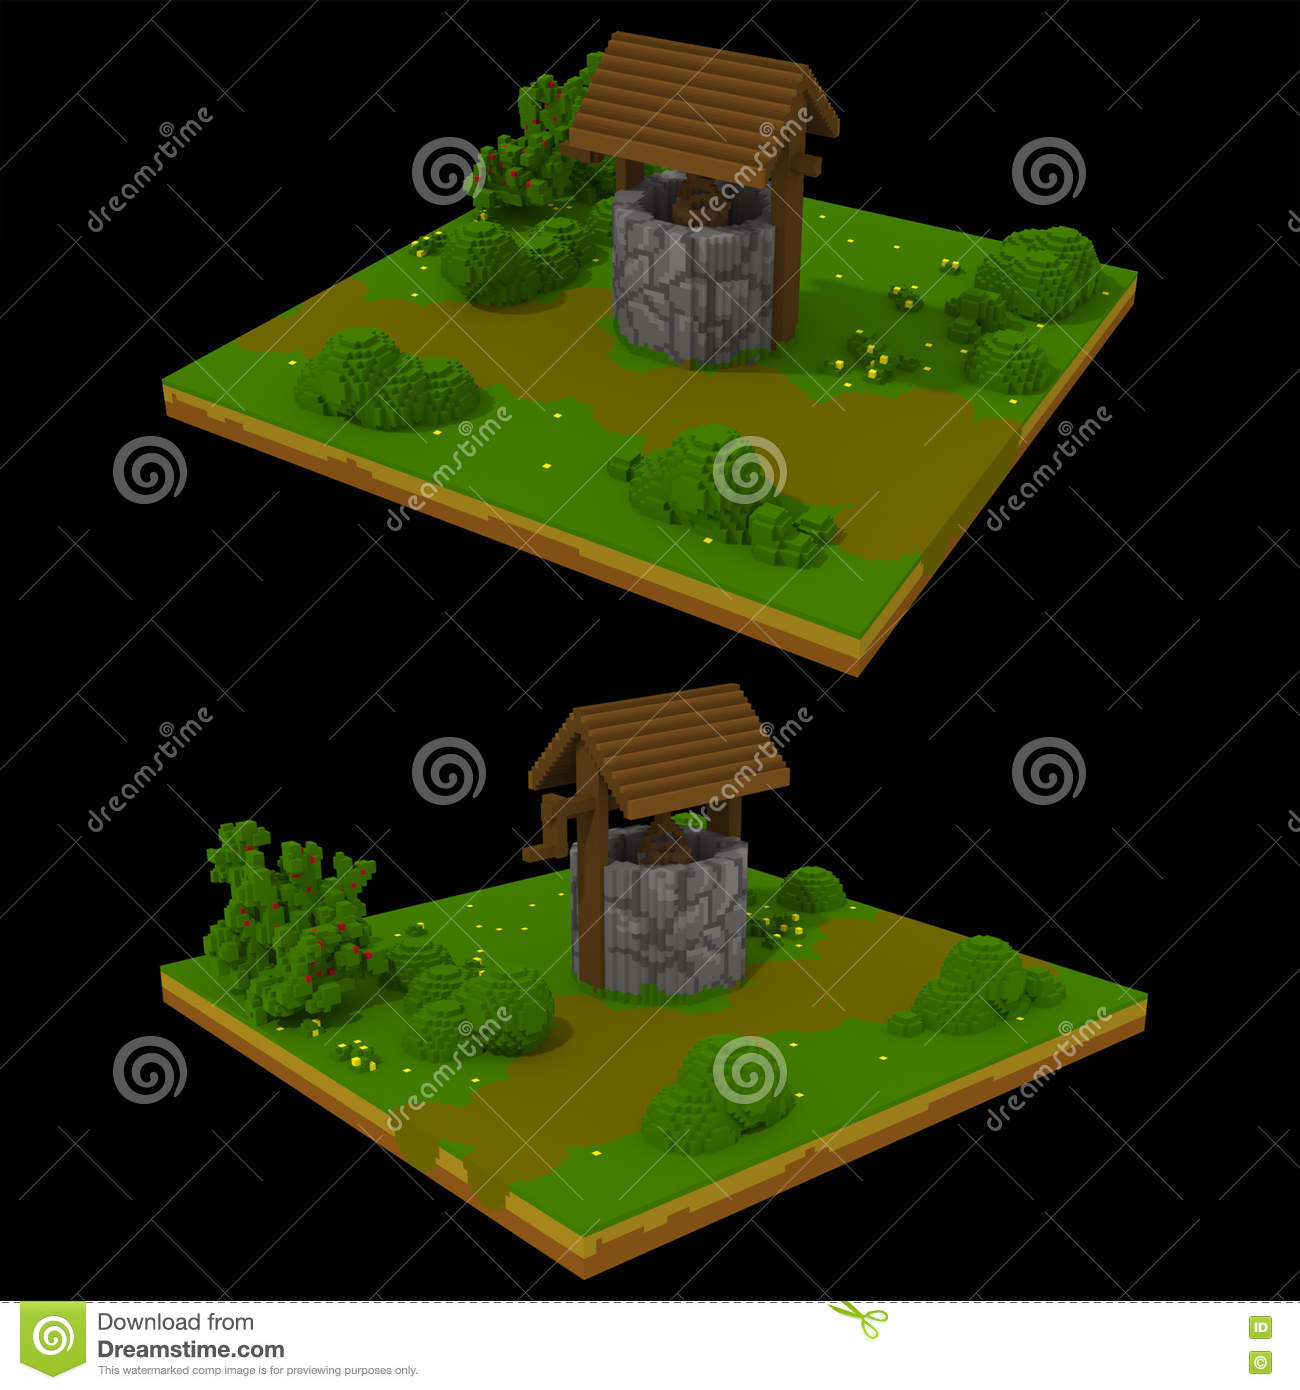 More similar stock images of 3d landscape with fall tree - 3d Voxel Landscape With Well Royalty Free Stock Image